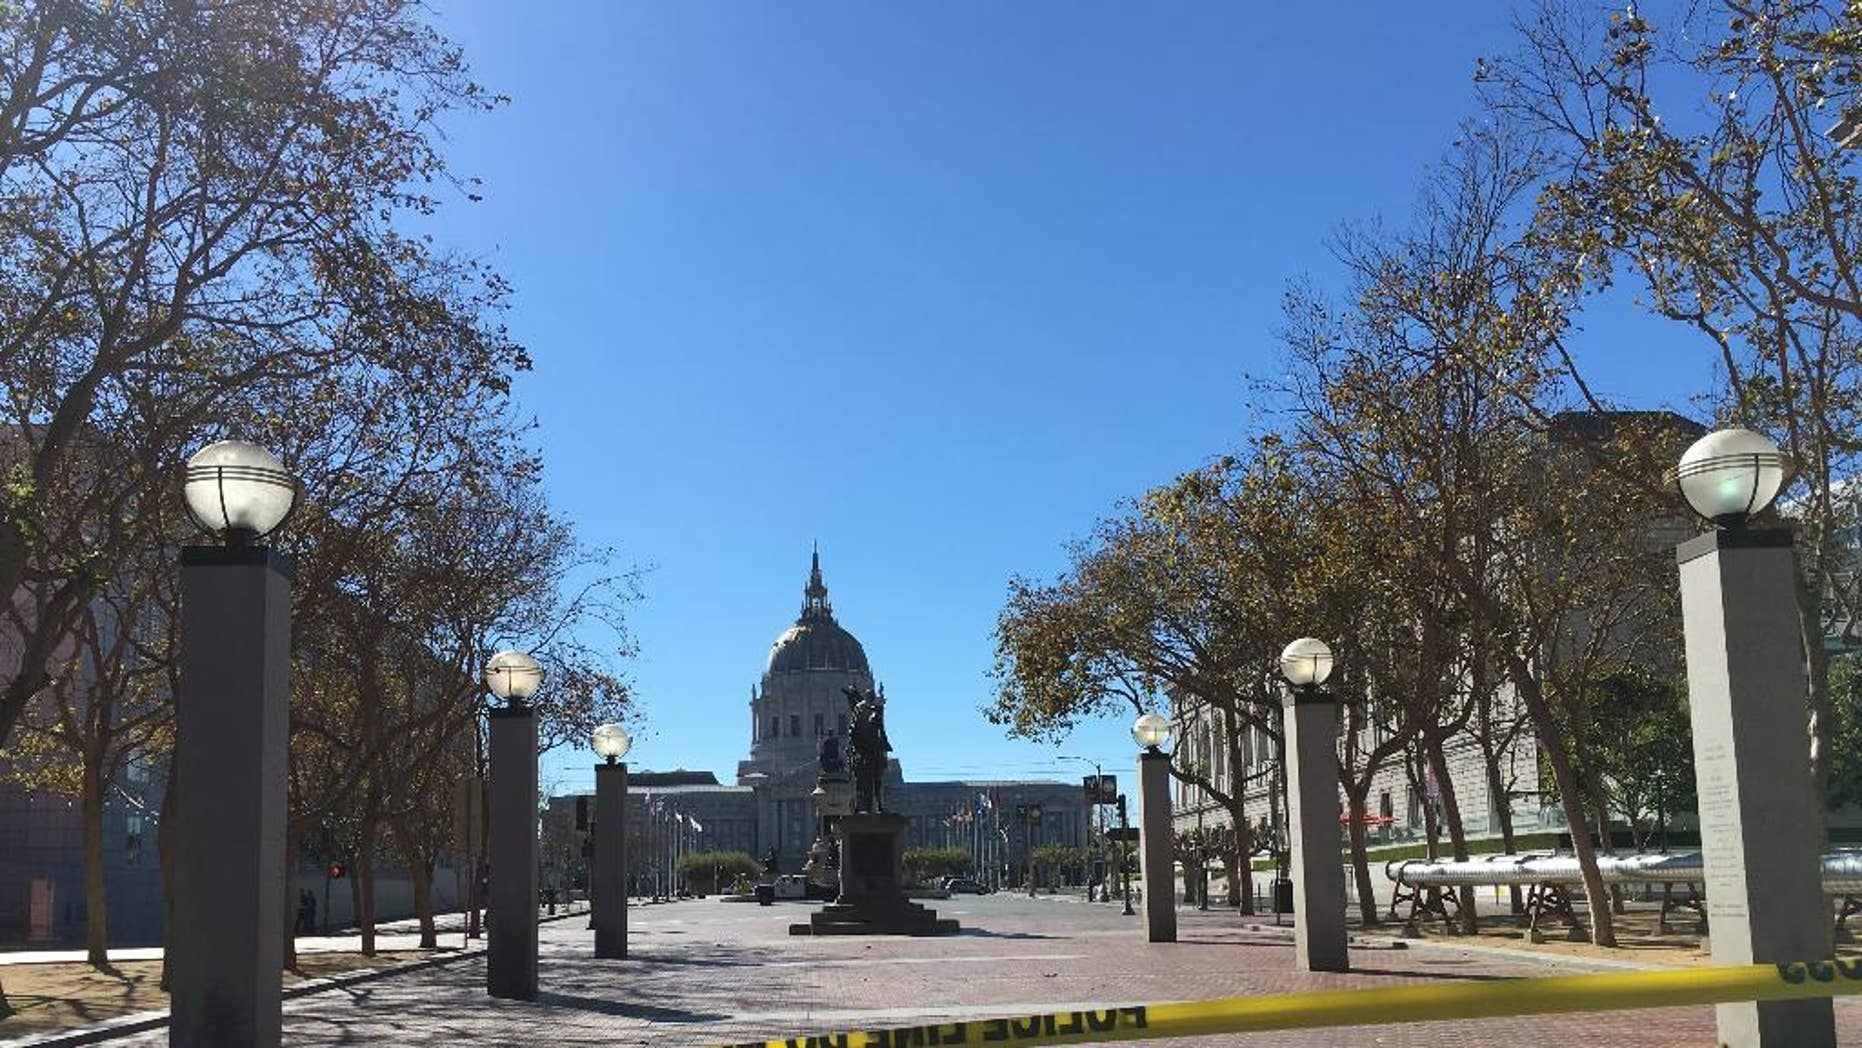 Police in San Francisco have blocked off traffic around Civic Center and United Nations Plaza after receiving reports of a man who might be armed, Saturday, Sept. 24, 2016. KGO-TV said Saturday that pedestrians and motorists are being asked to leave the area amid reports of a man holding up something that may be a weapon.